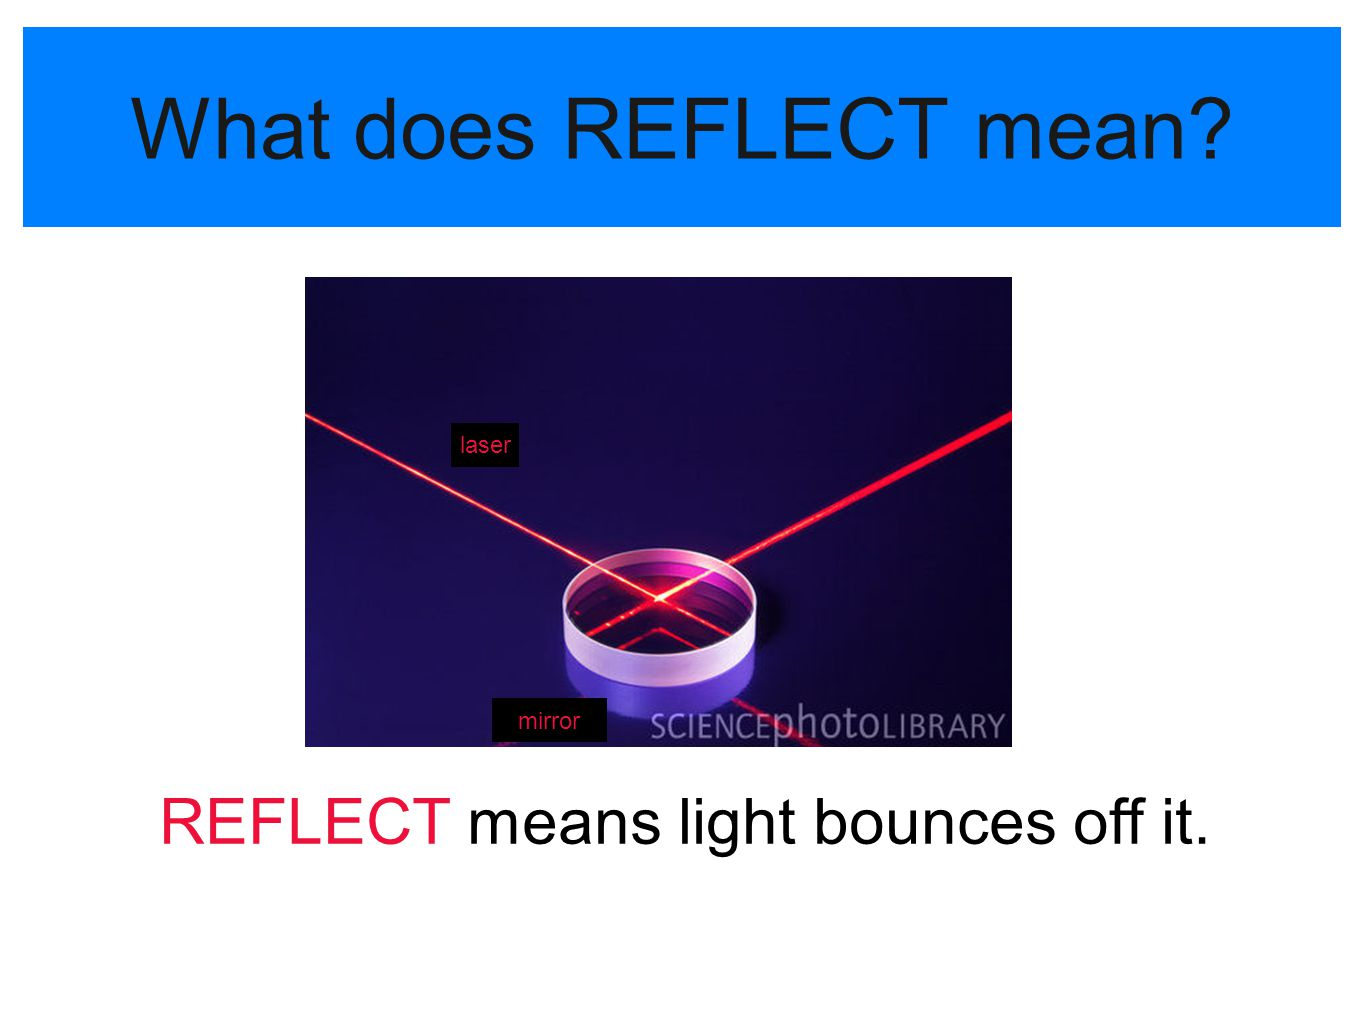 REFLECT means light bounces off it.